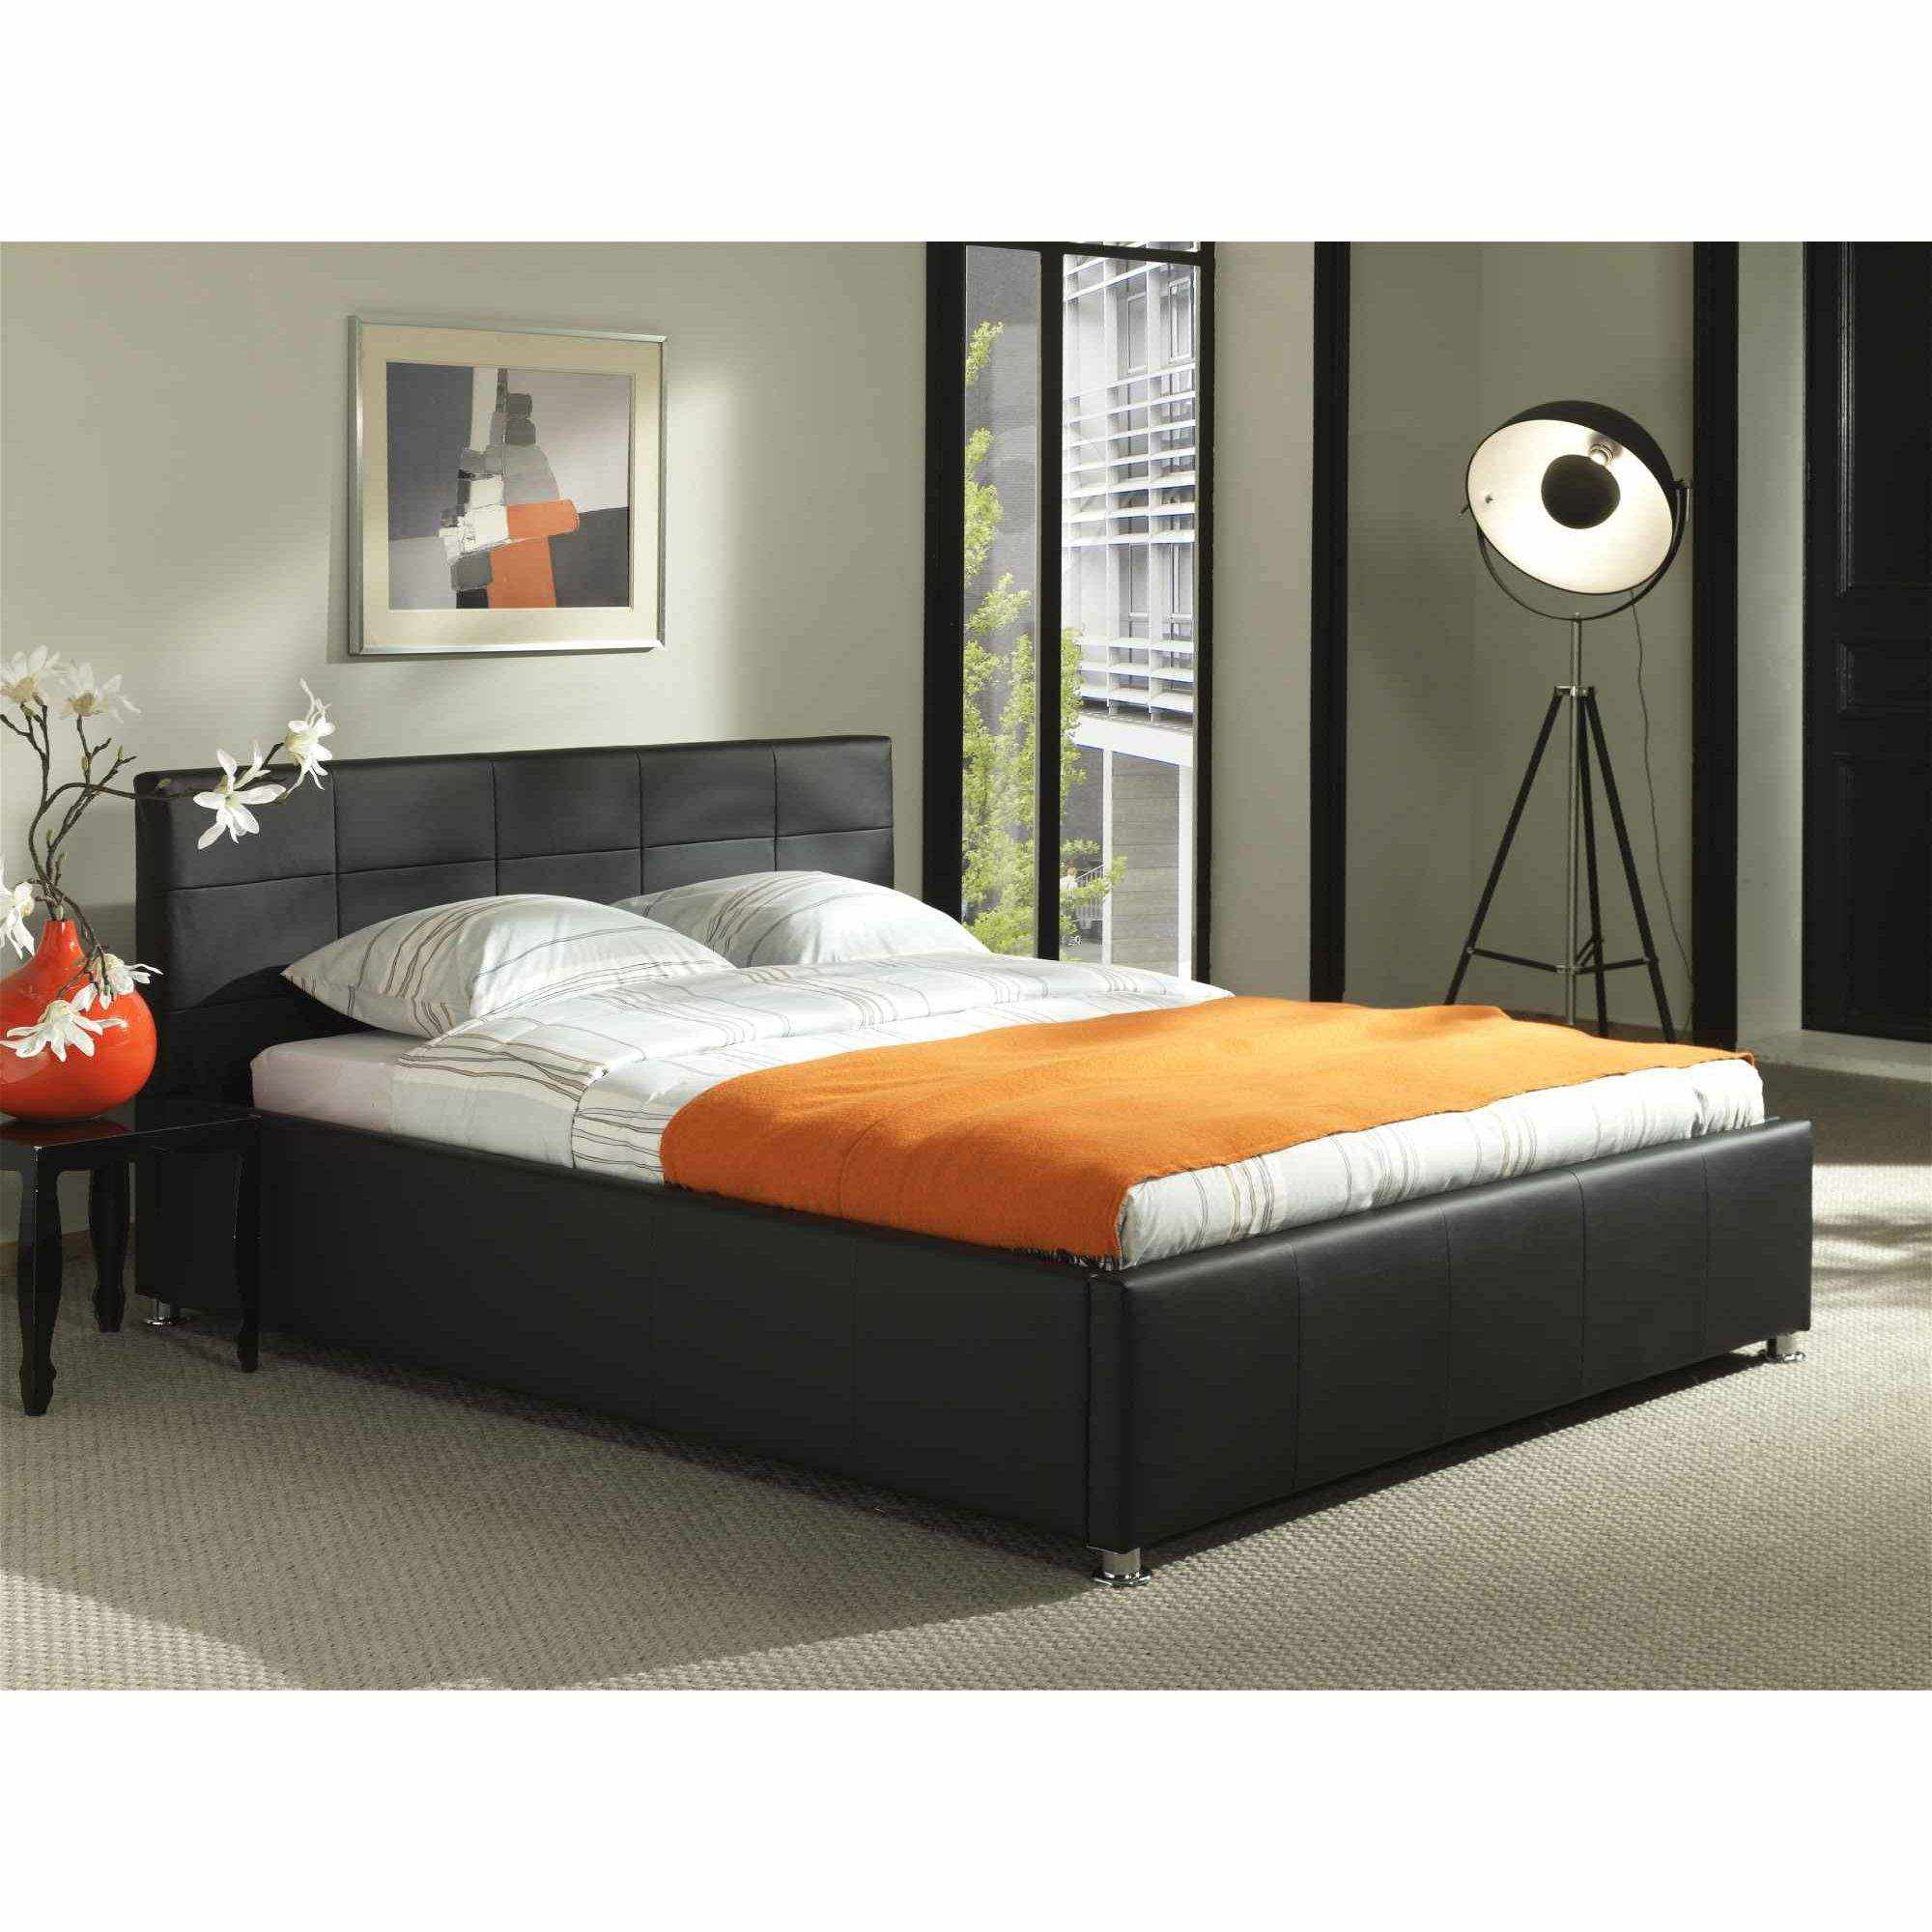 deco in paris 1 lit coffre noir sommier relevable. Black Bedroom Furniture Sets. Home Design Ideas